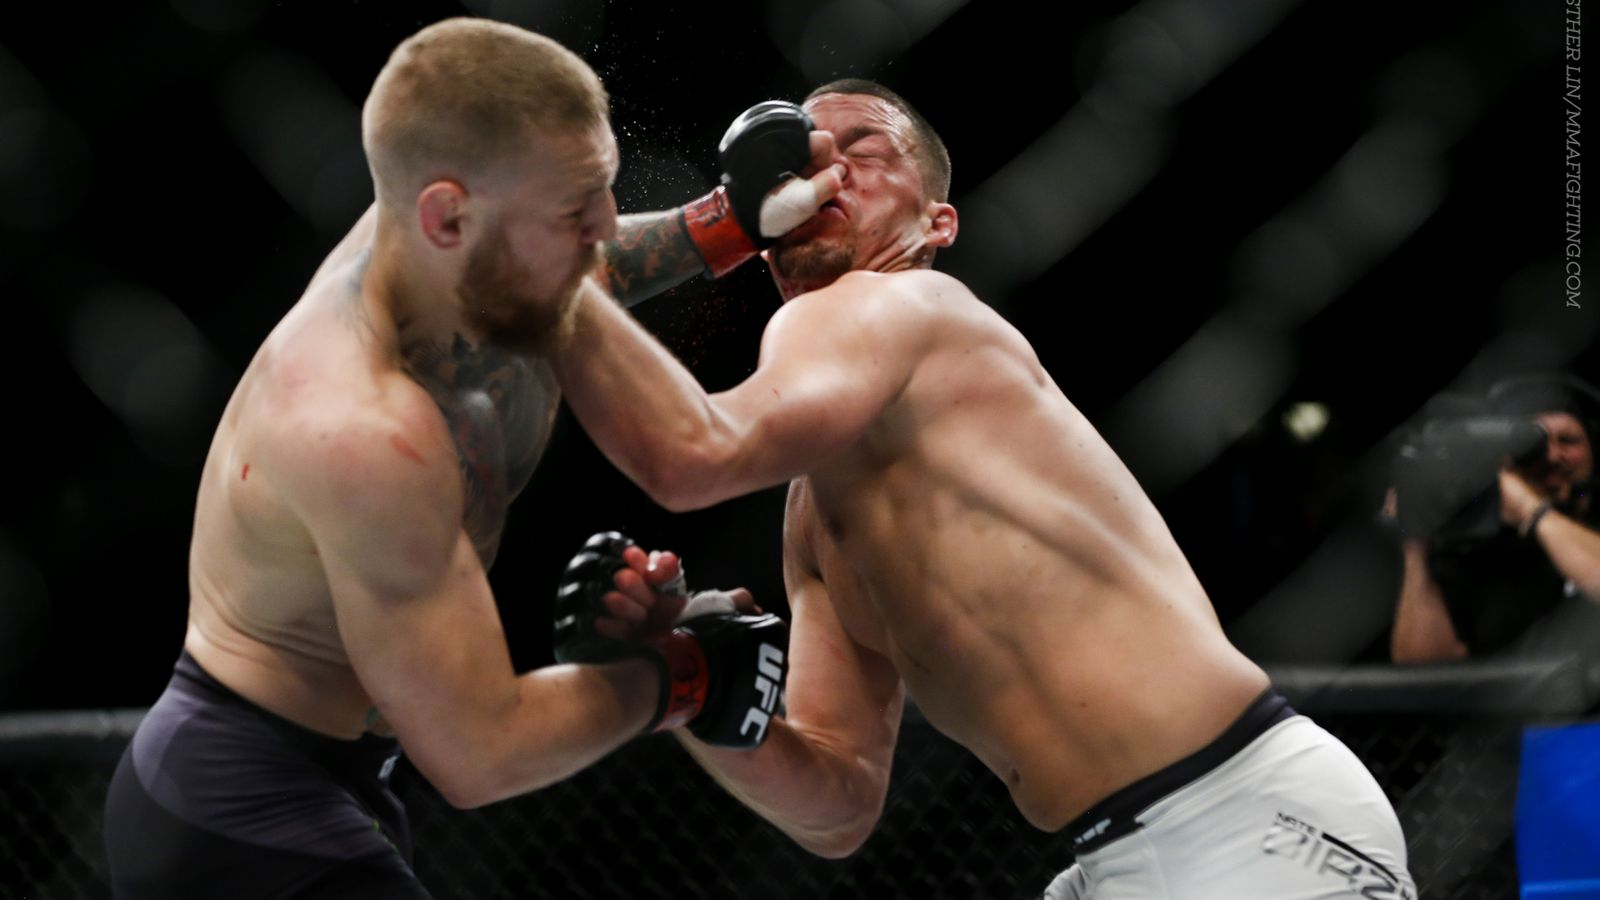 Fightweets: You know you'll watch Diaz-McGregor 2